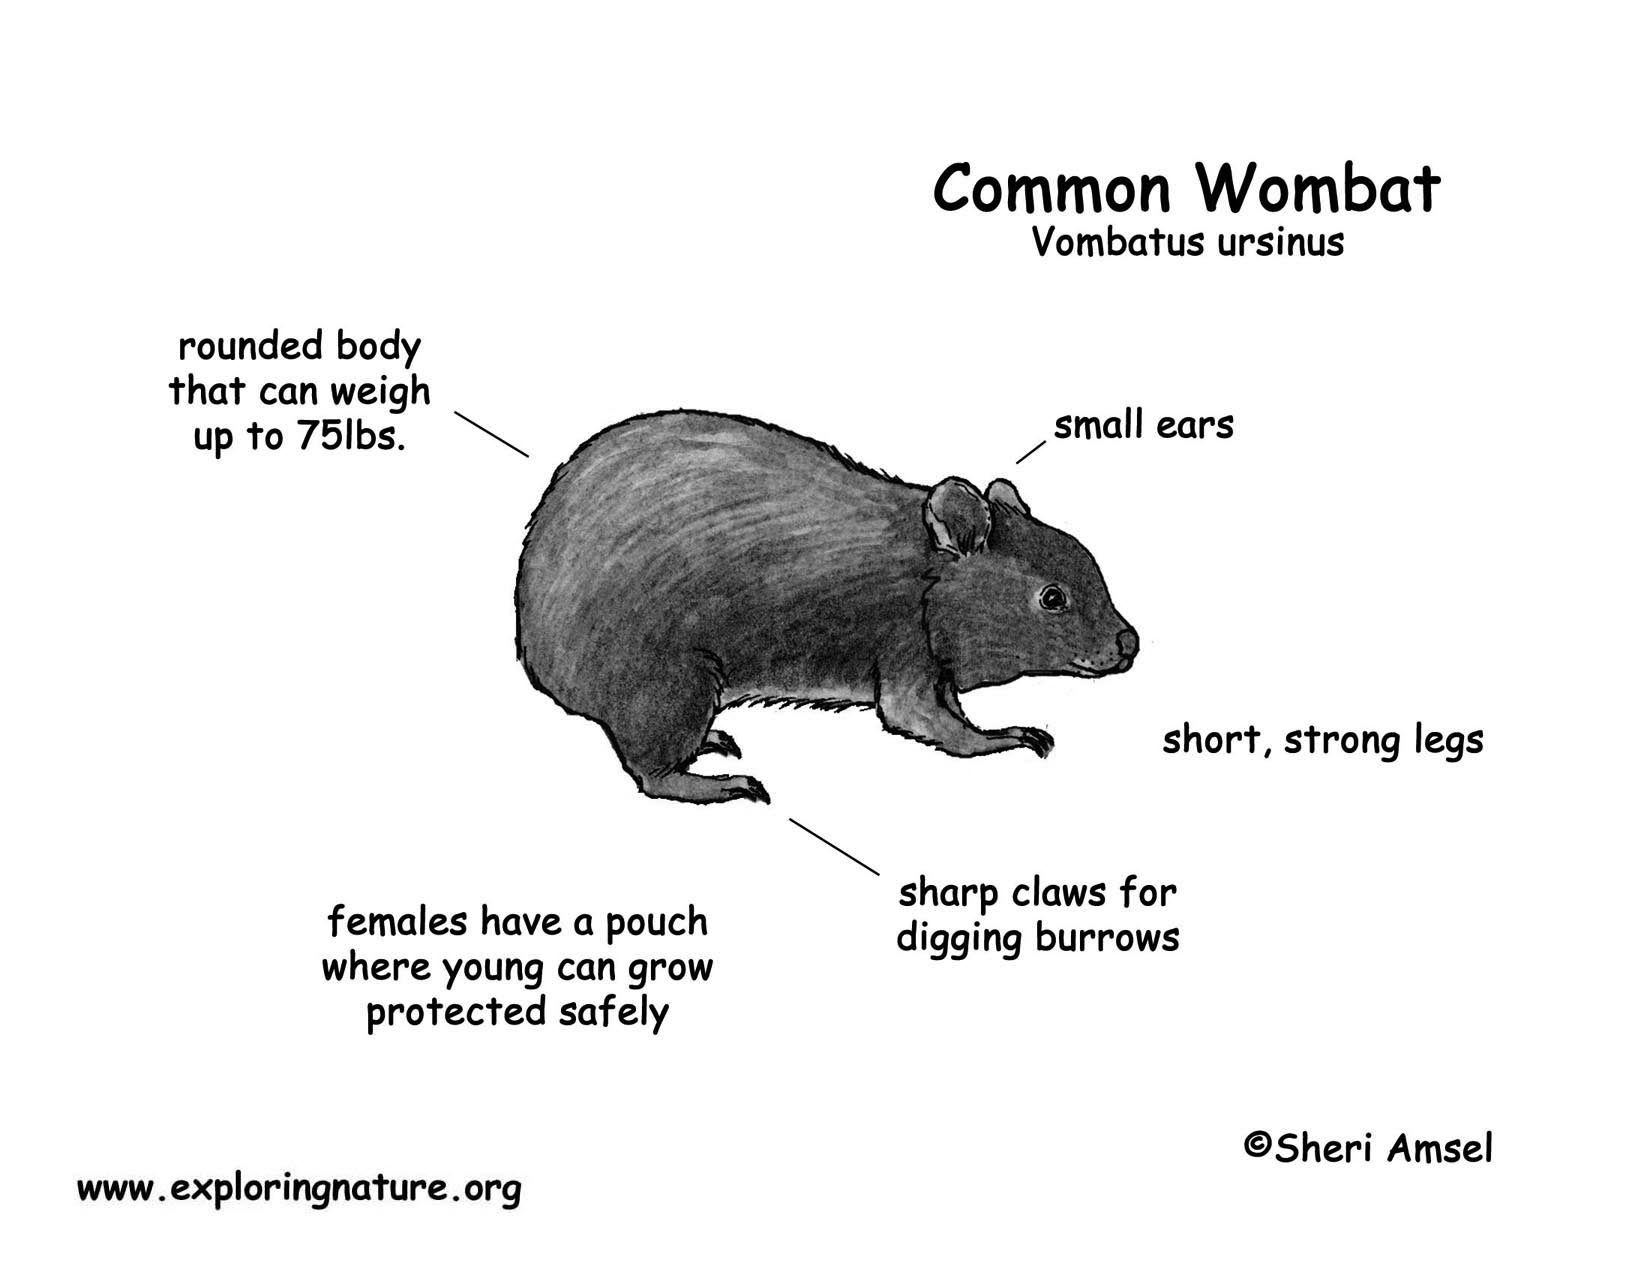 Wombat Common